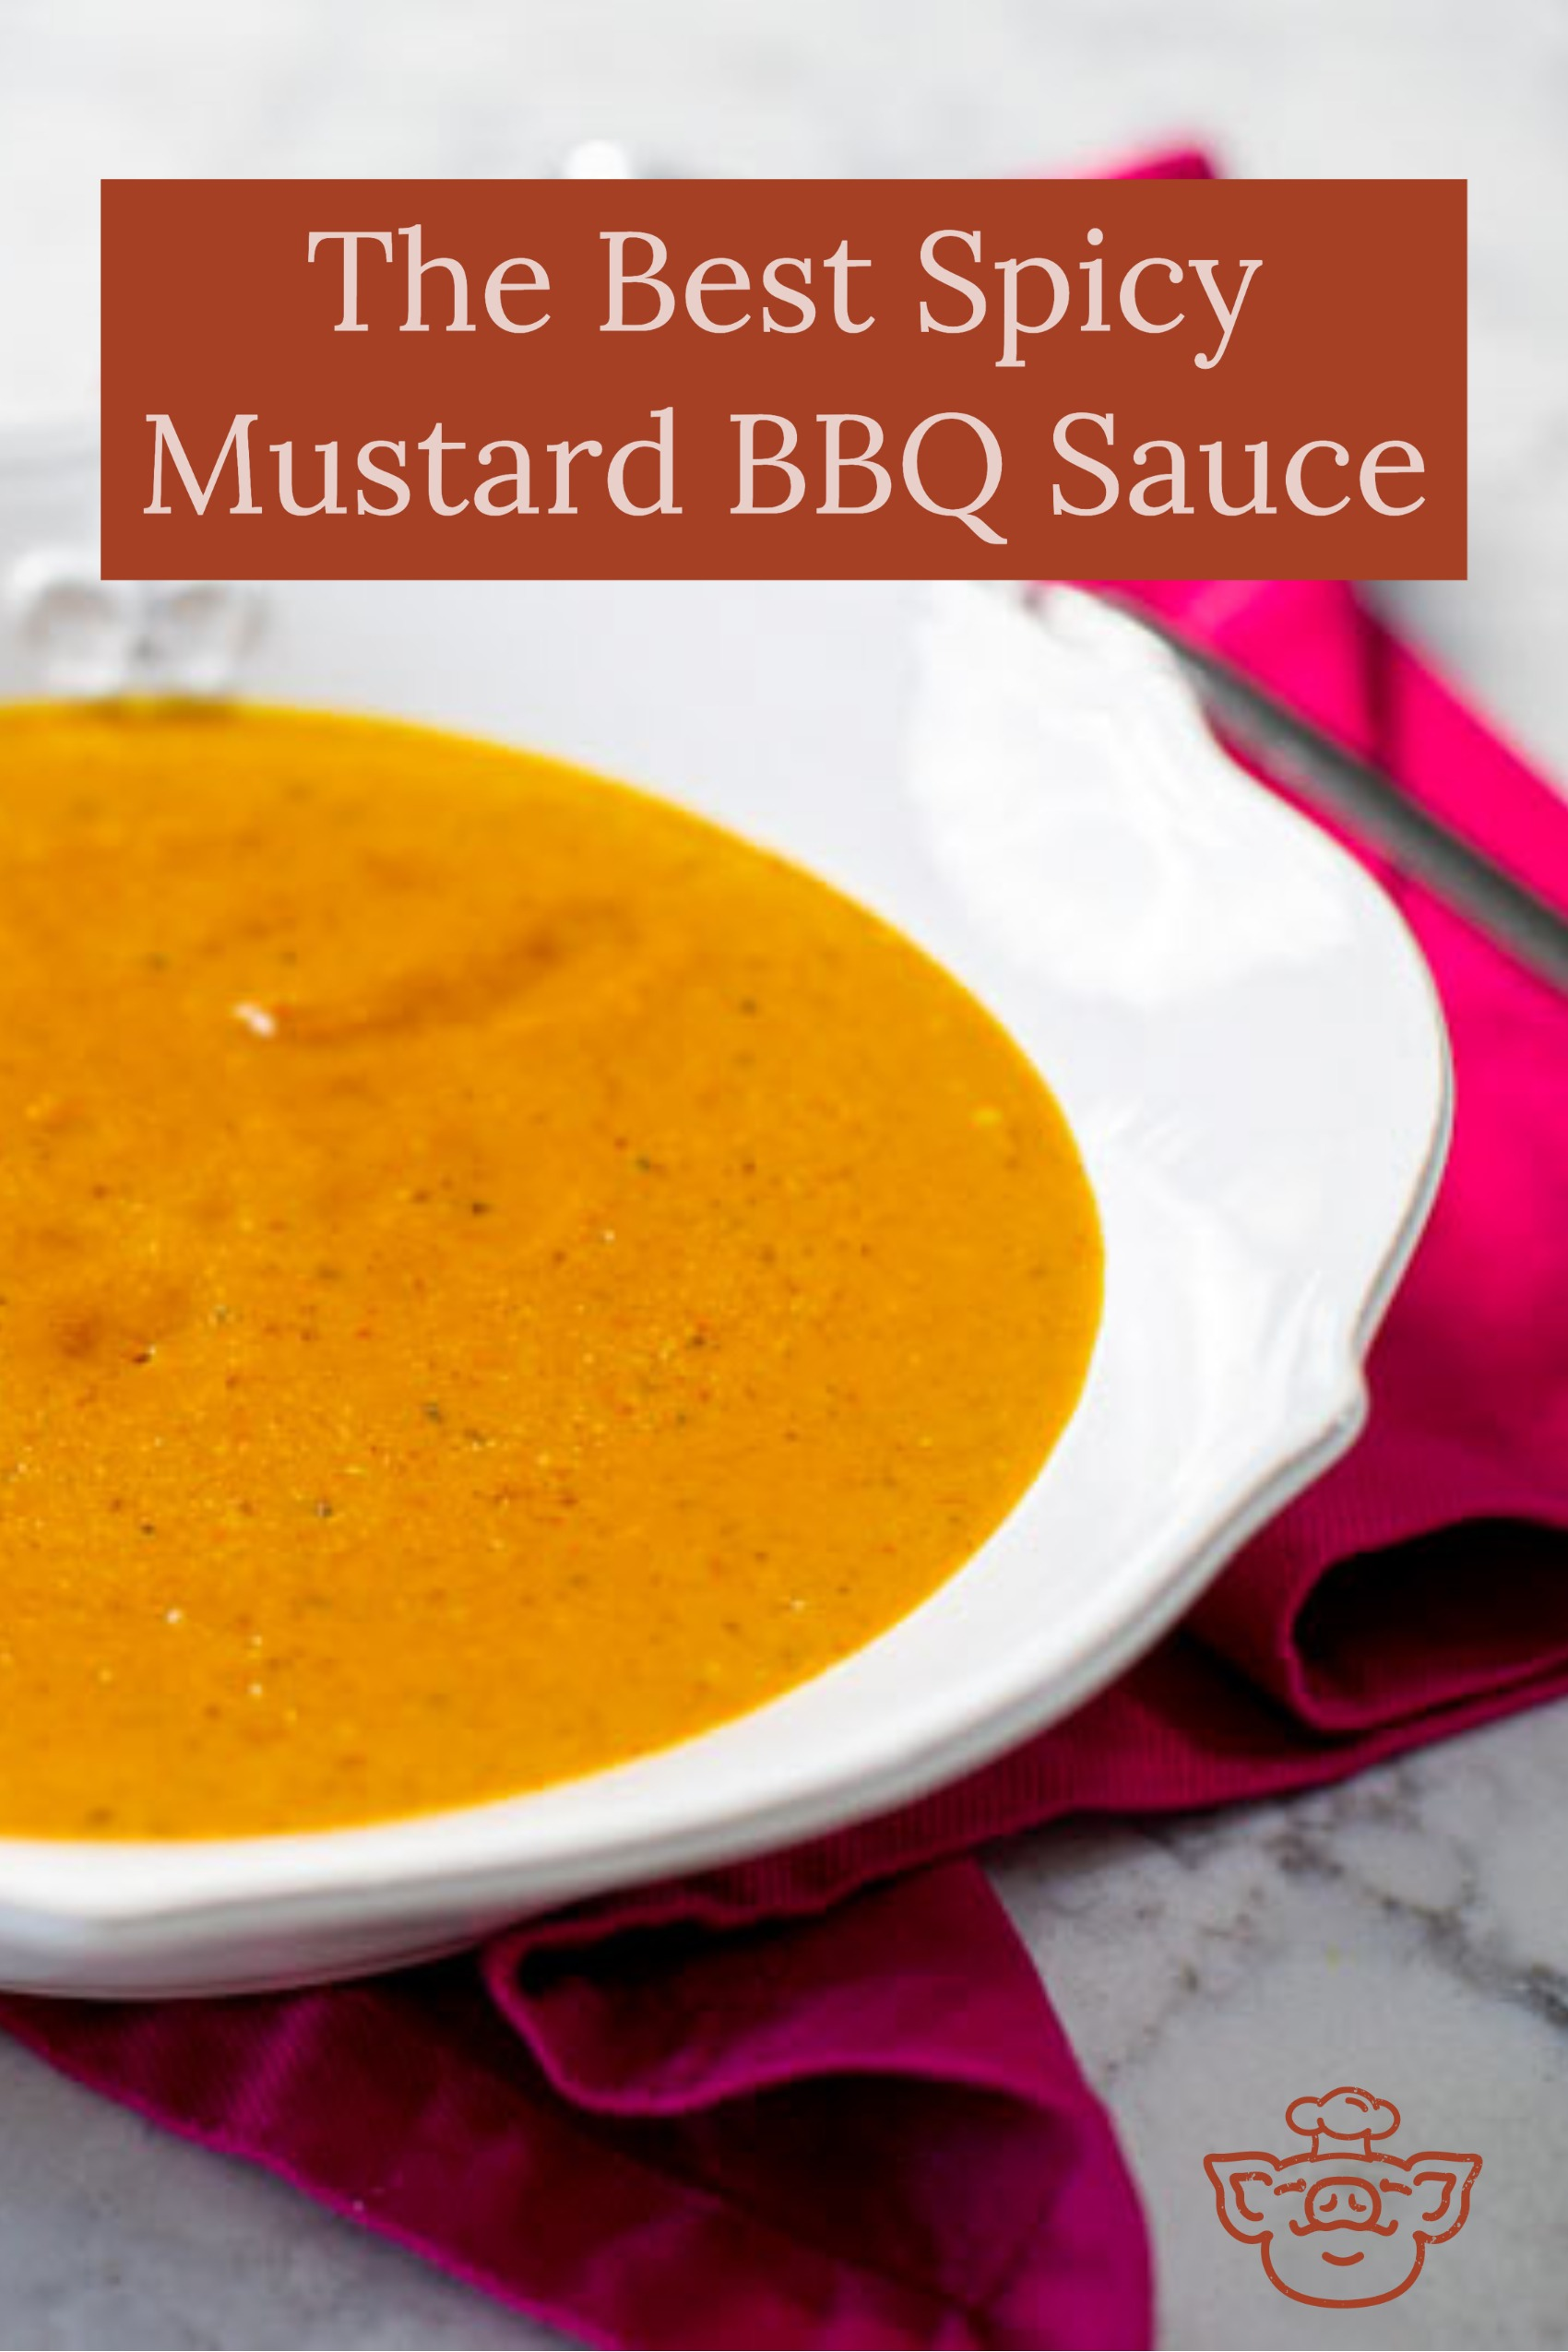 The Best Spicy Mustard BBQ Sauce